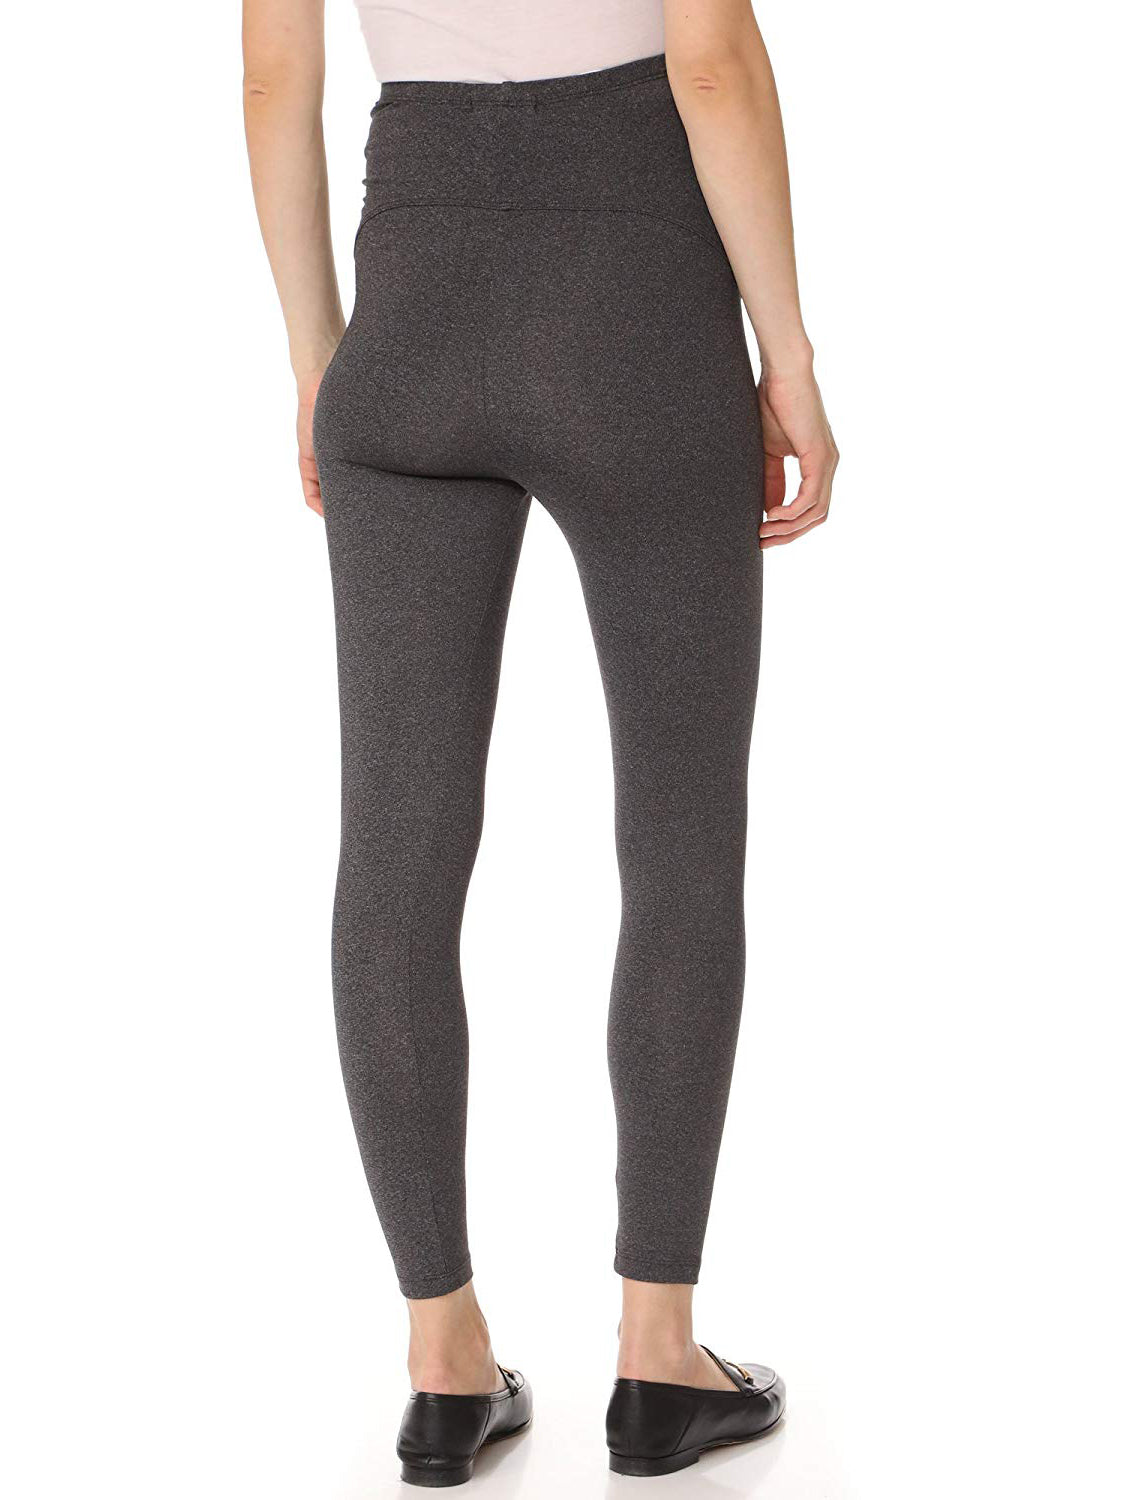 TILDEN | David Lerner Maternity Legging - Charcoal